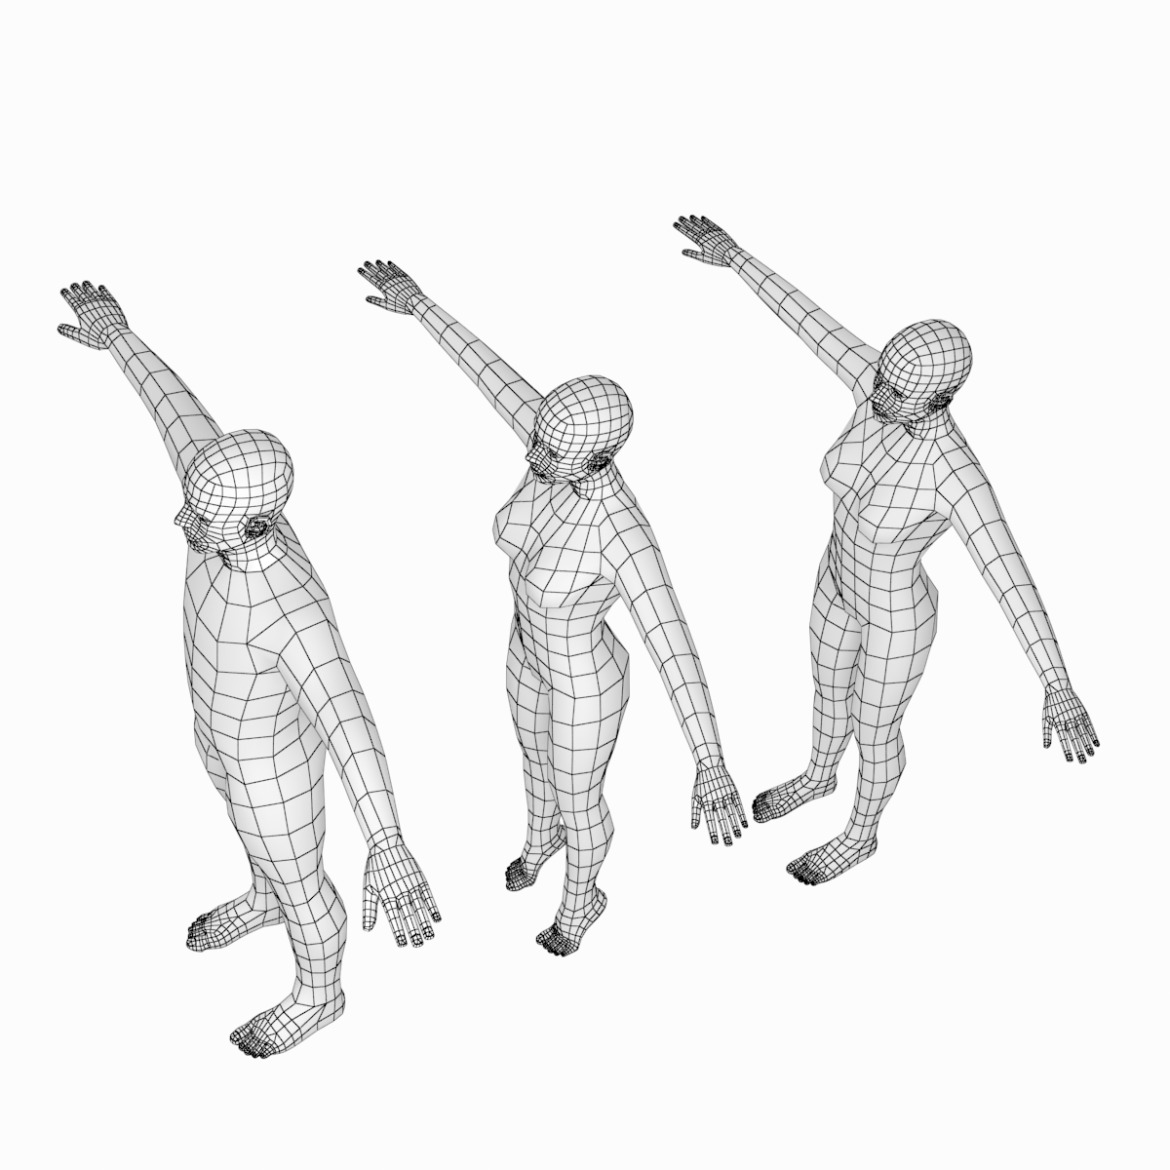 male and female base mesh in t-pose 3d model png stl obj ma mb max fbx dxf dwg dae c4d 3ds txt 305173